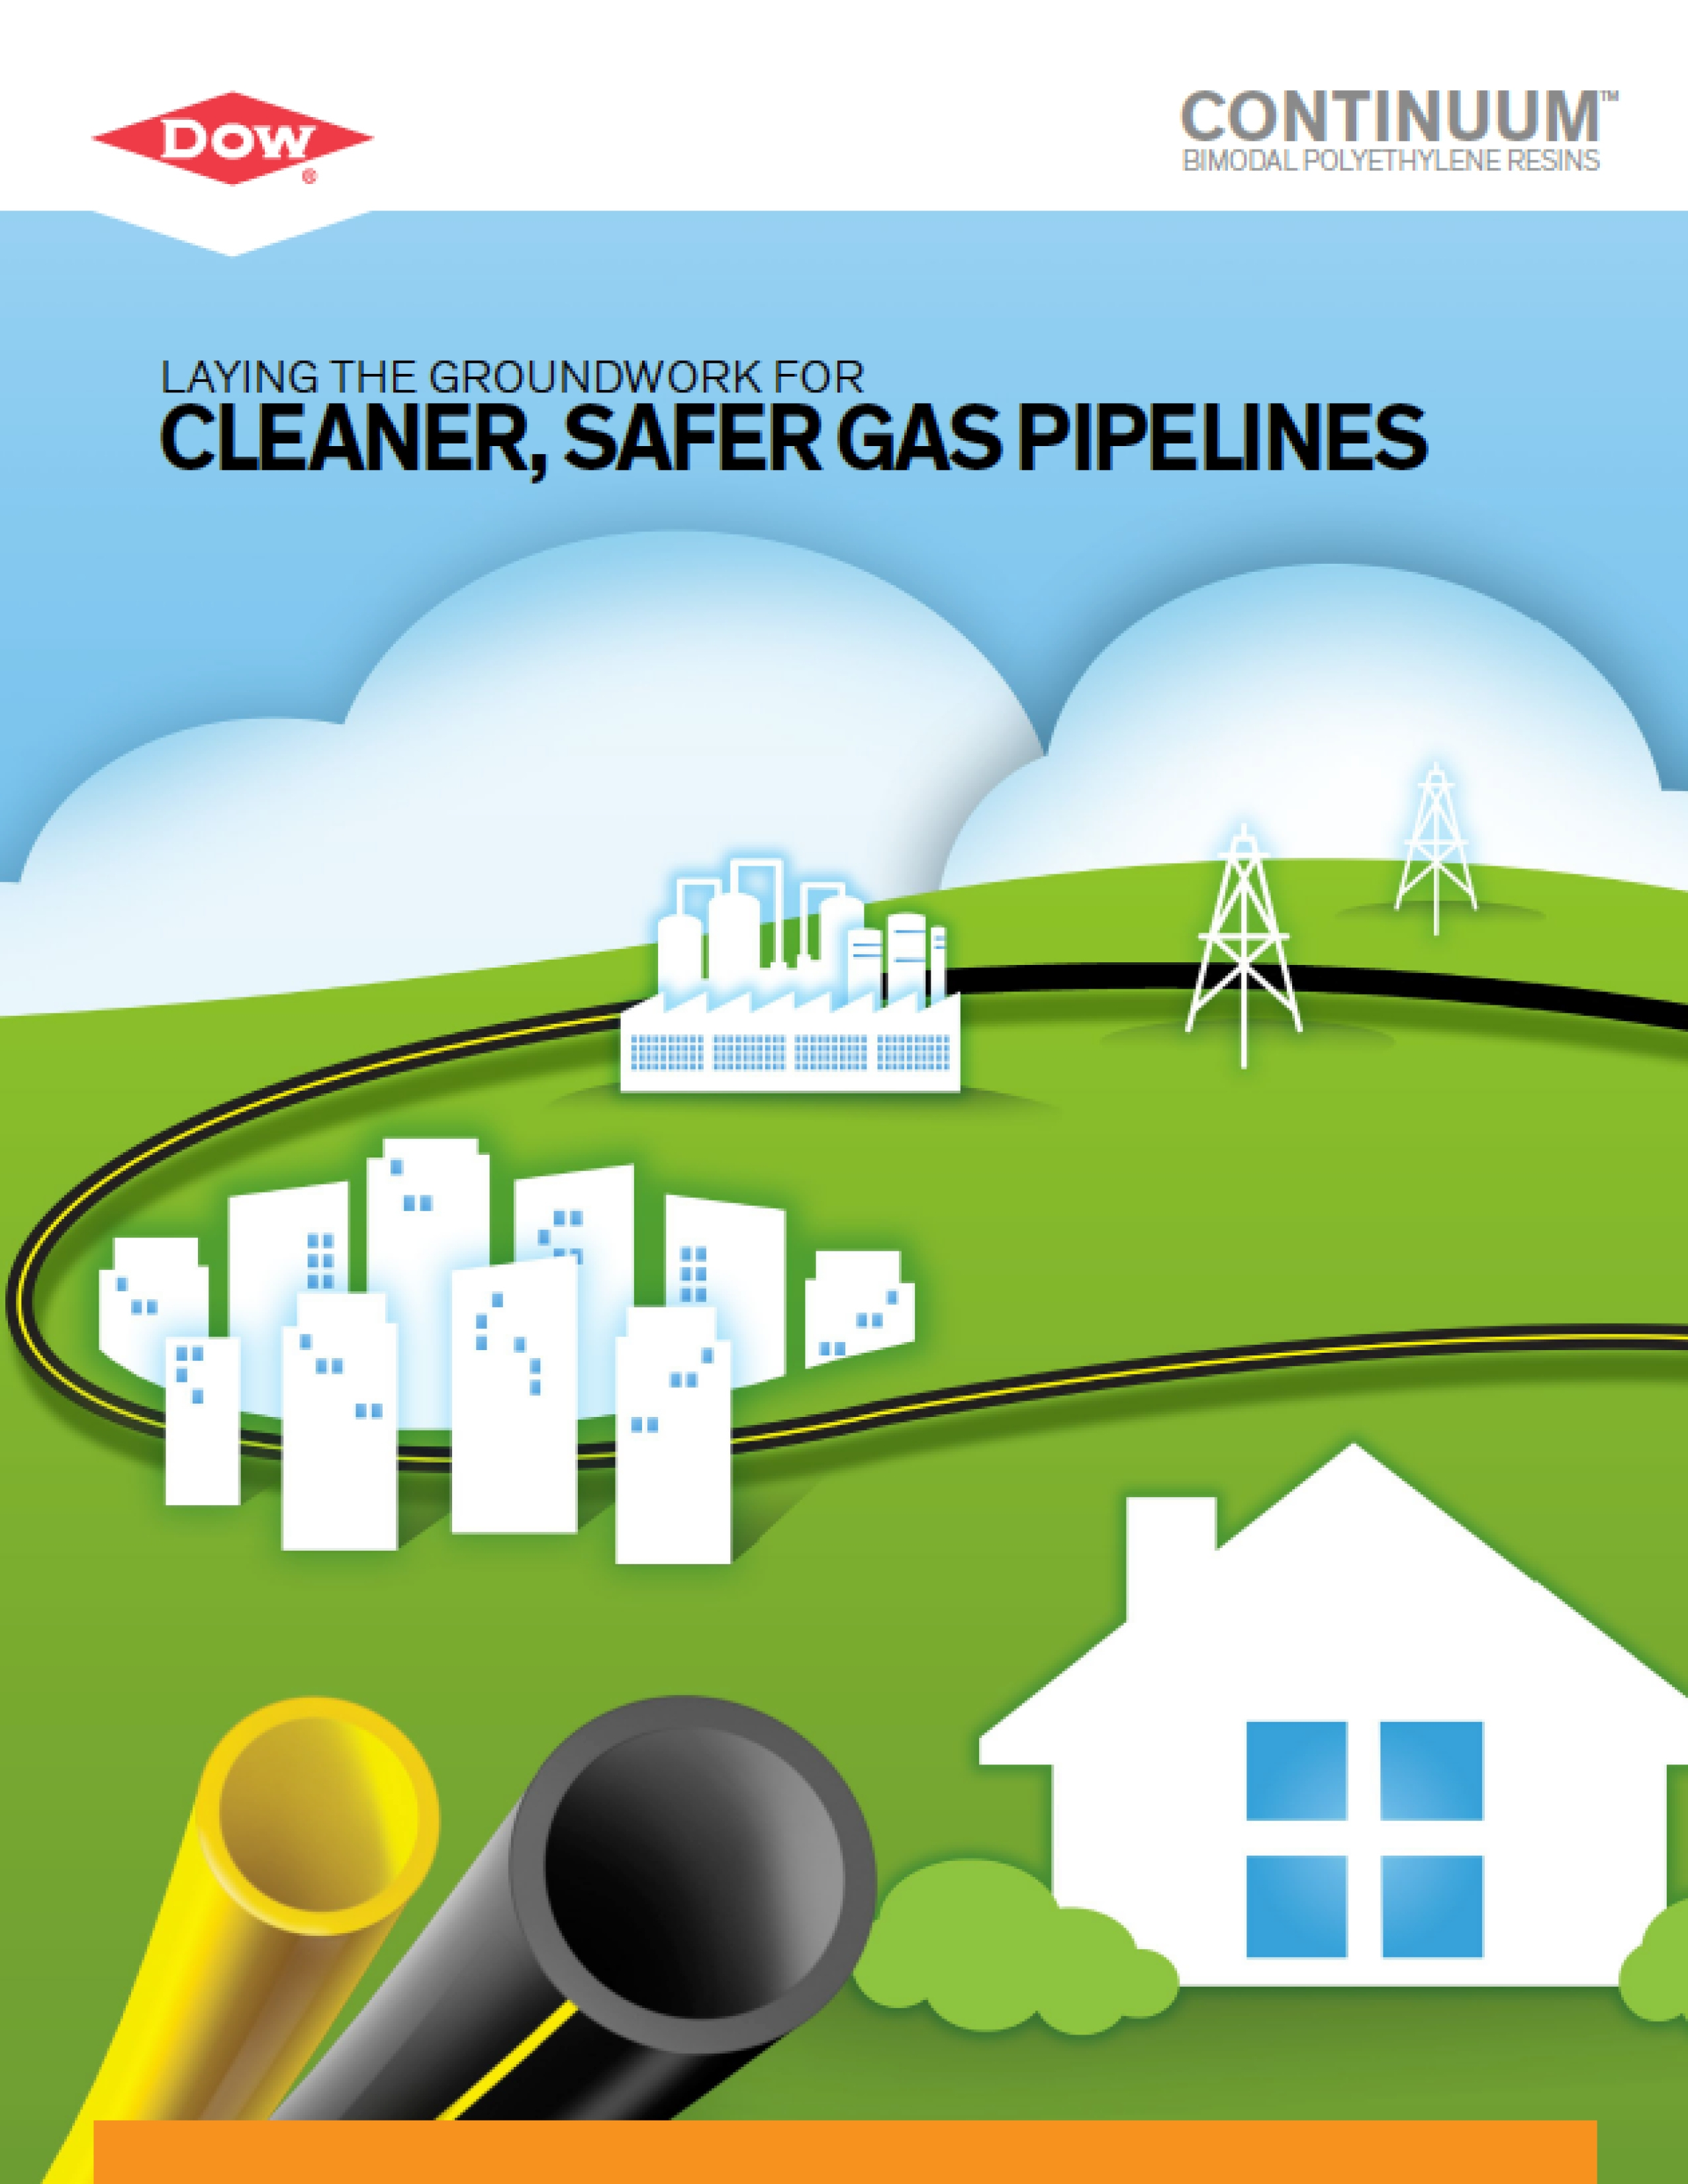 <p>Laying the groundwork for cleaner, safer gas pipelines</p>